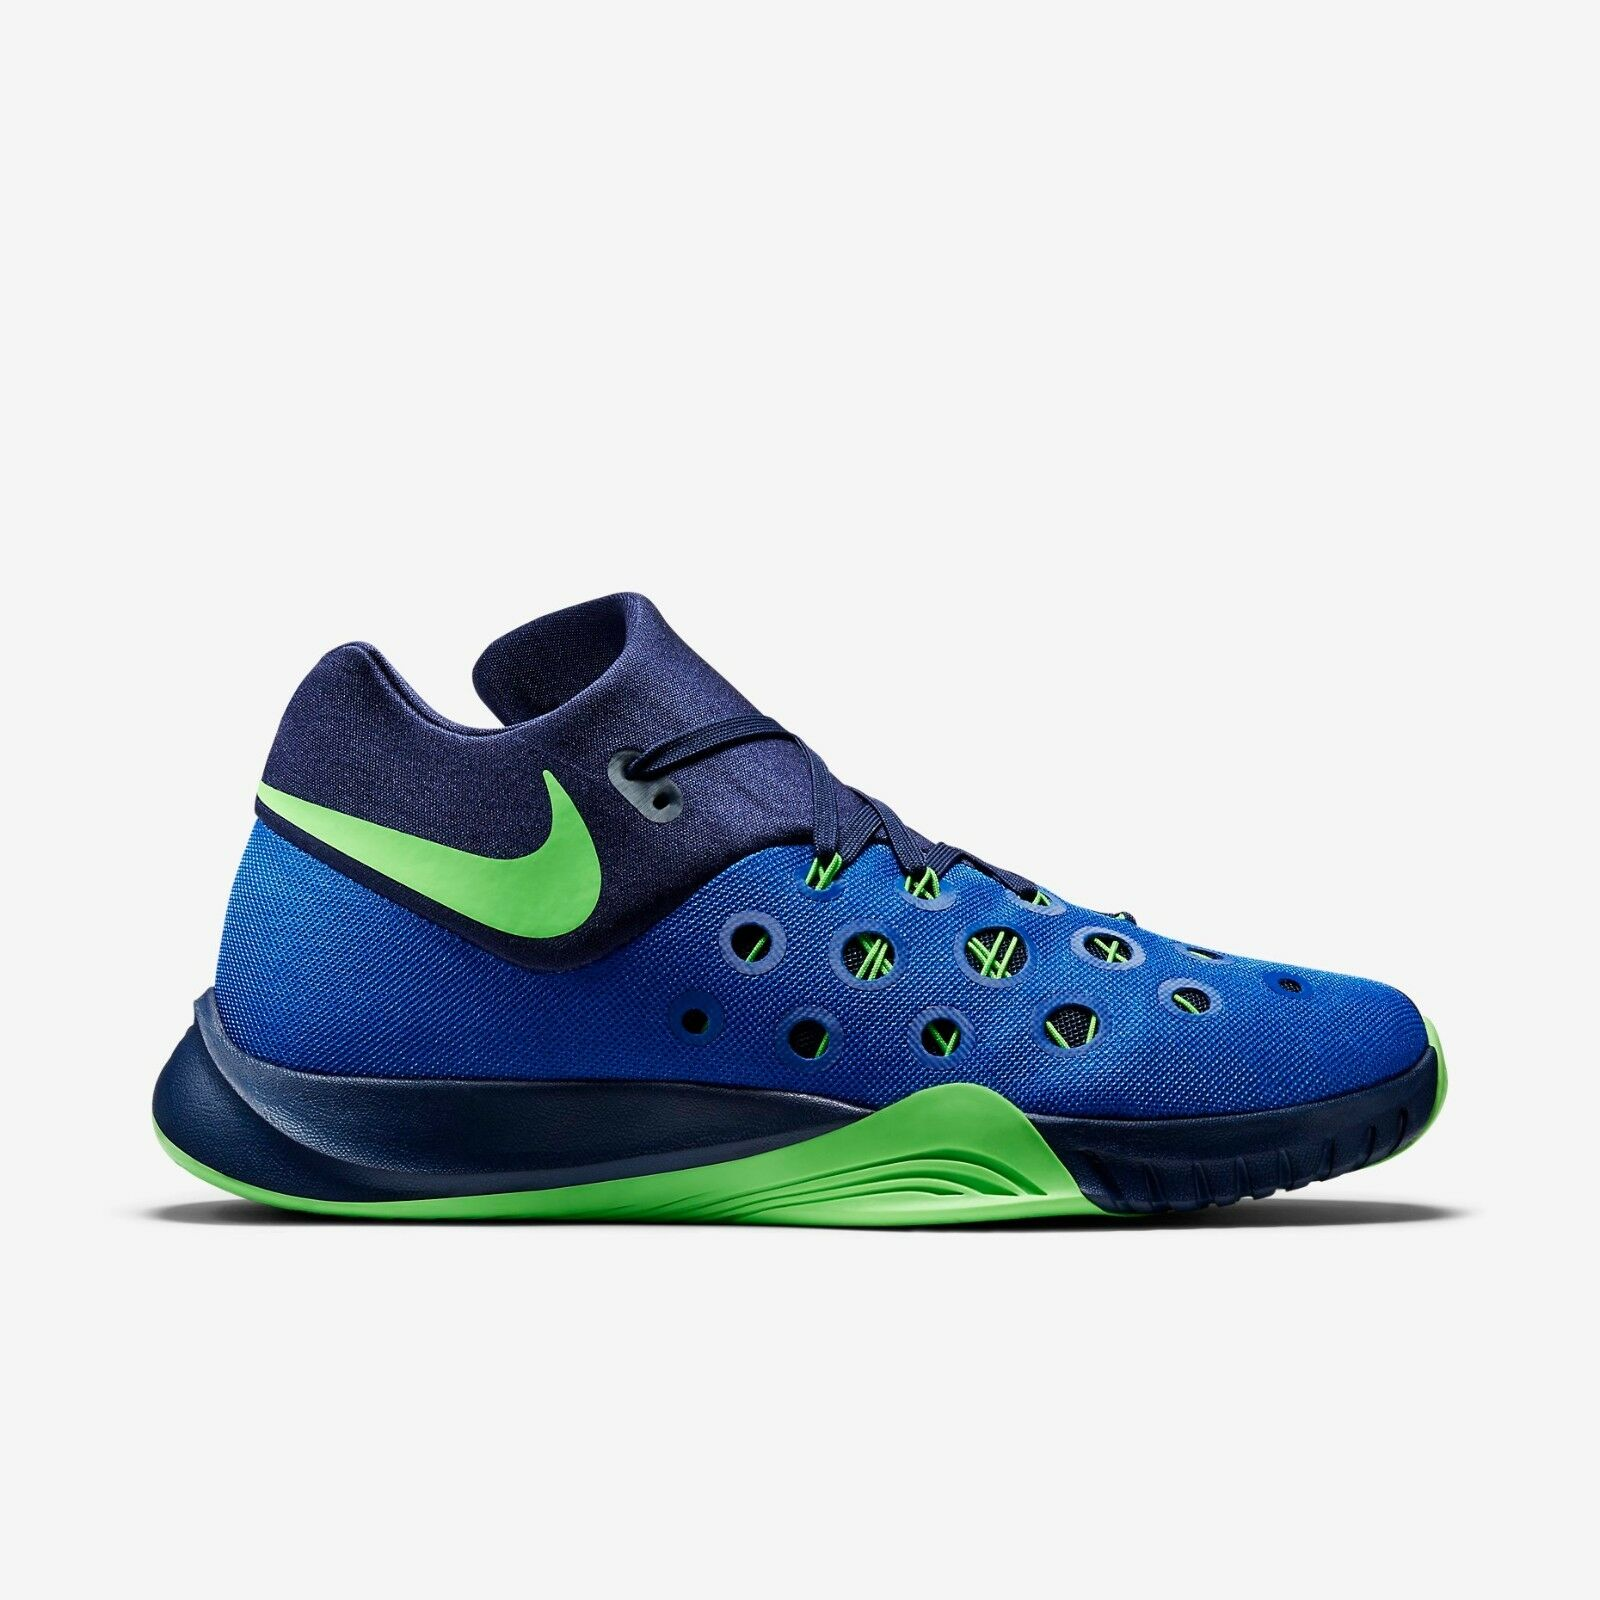 749882-434 Nike HyperQuickness 2015 Basketball Royal/Navy/Green Sz 8-12 NIB